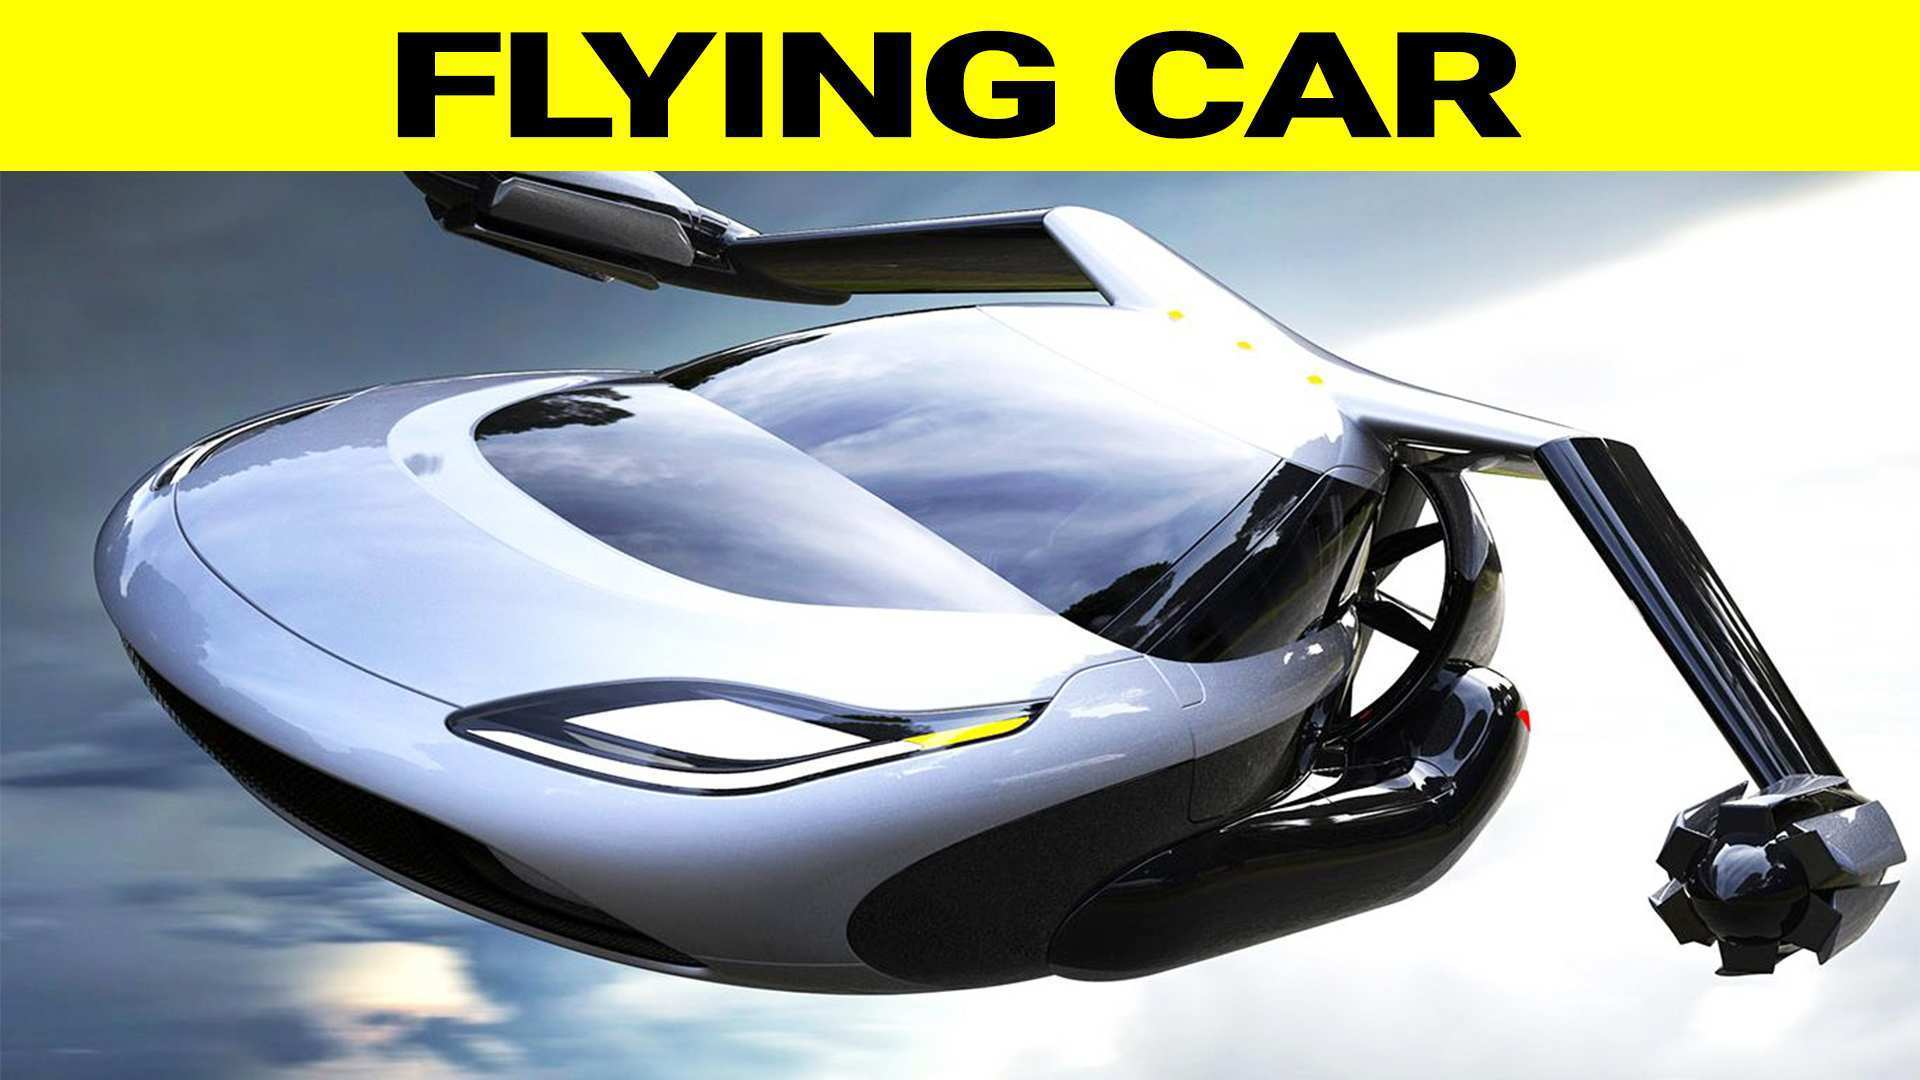 71 Concept of The Volvo Flying Car 2019 Engine Model with The Volvo Flying Car 2019 Engine